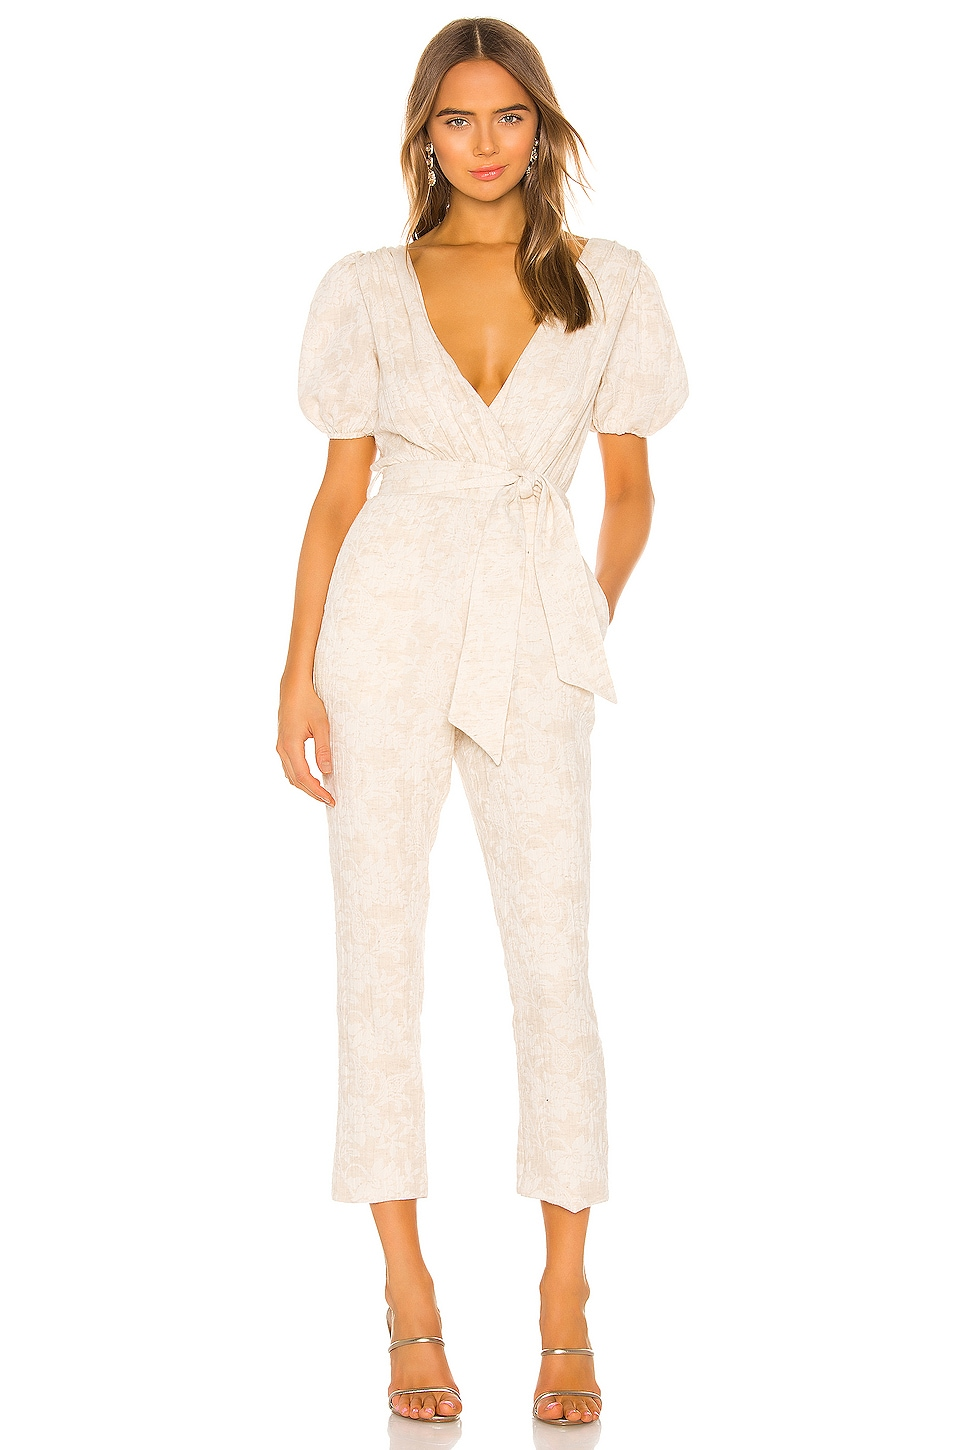 MAJORELLE Brina Jumpsuit in Oatmilk